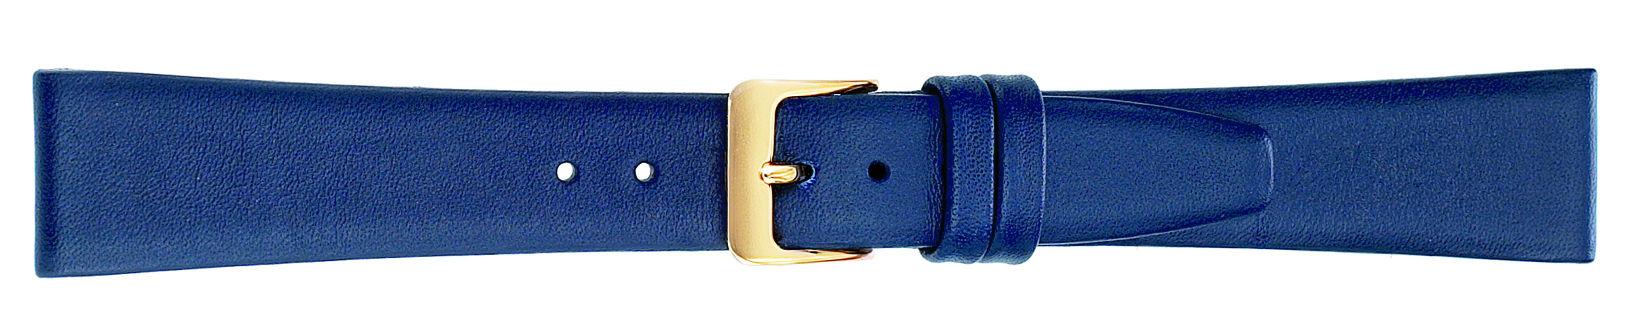 16MM Leather Band Navy Smooth Calf-0